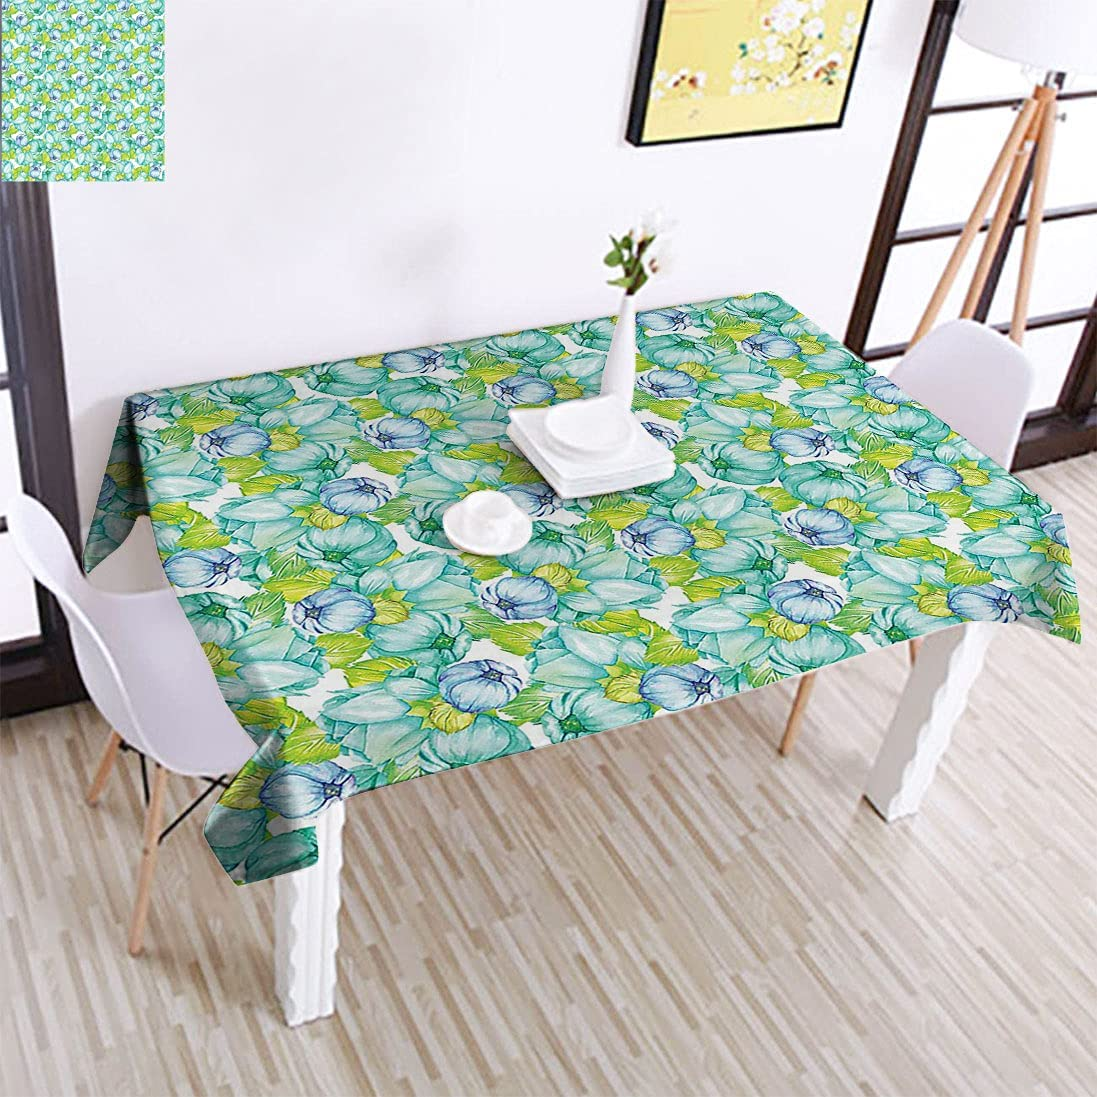 Turquoise In stock Max 46% OFF Decor Polyester Tablecloth, Flowers Blooming Figures